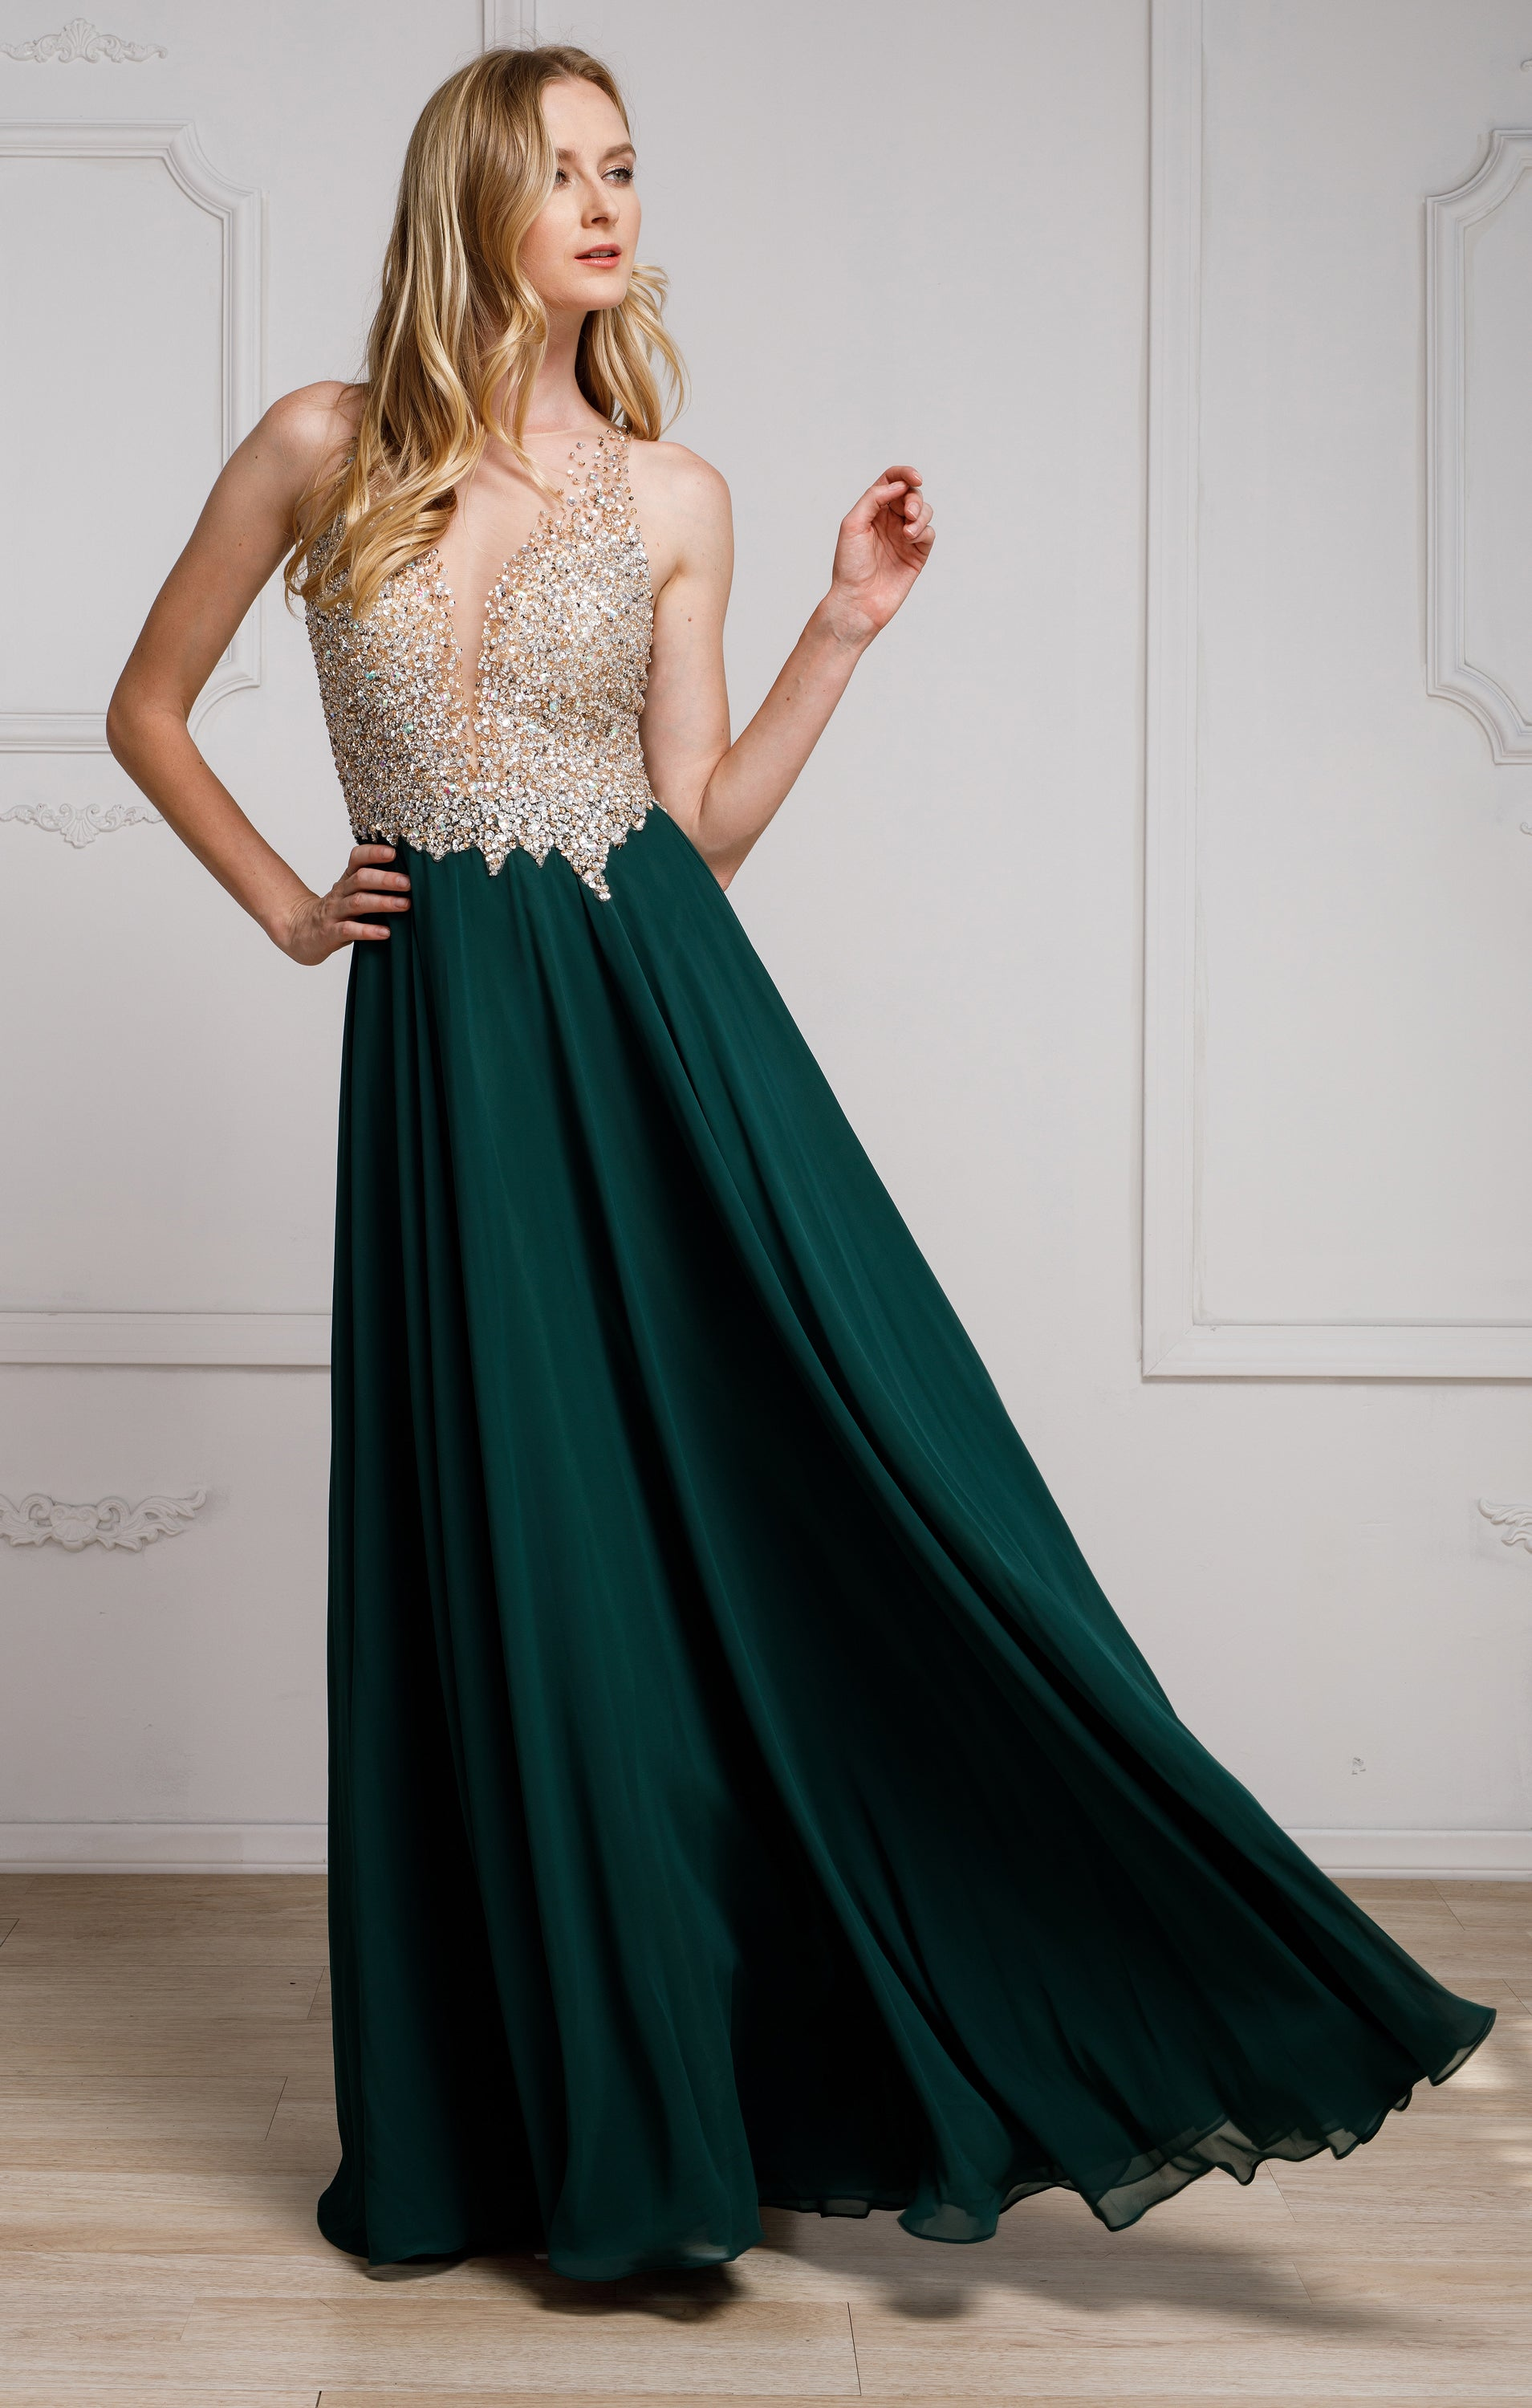 Main image of Sequined Plunging Neckine Prom Gown